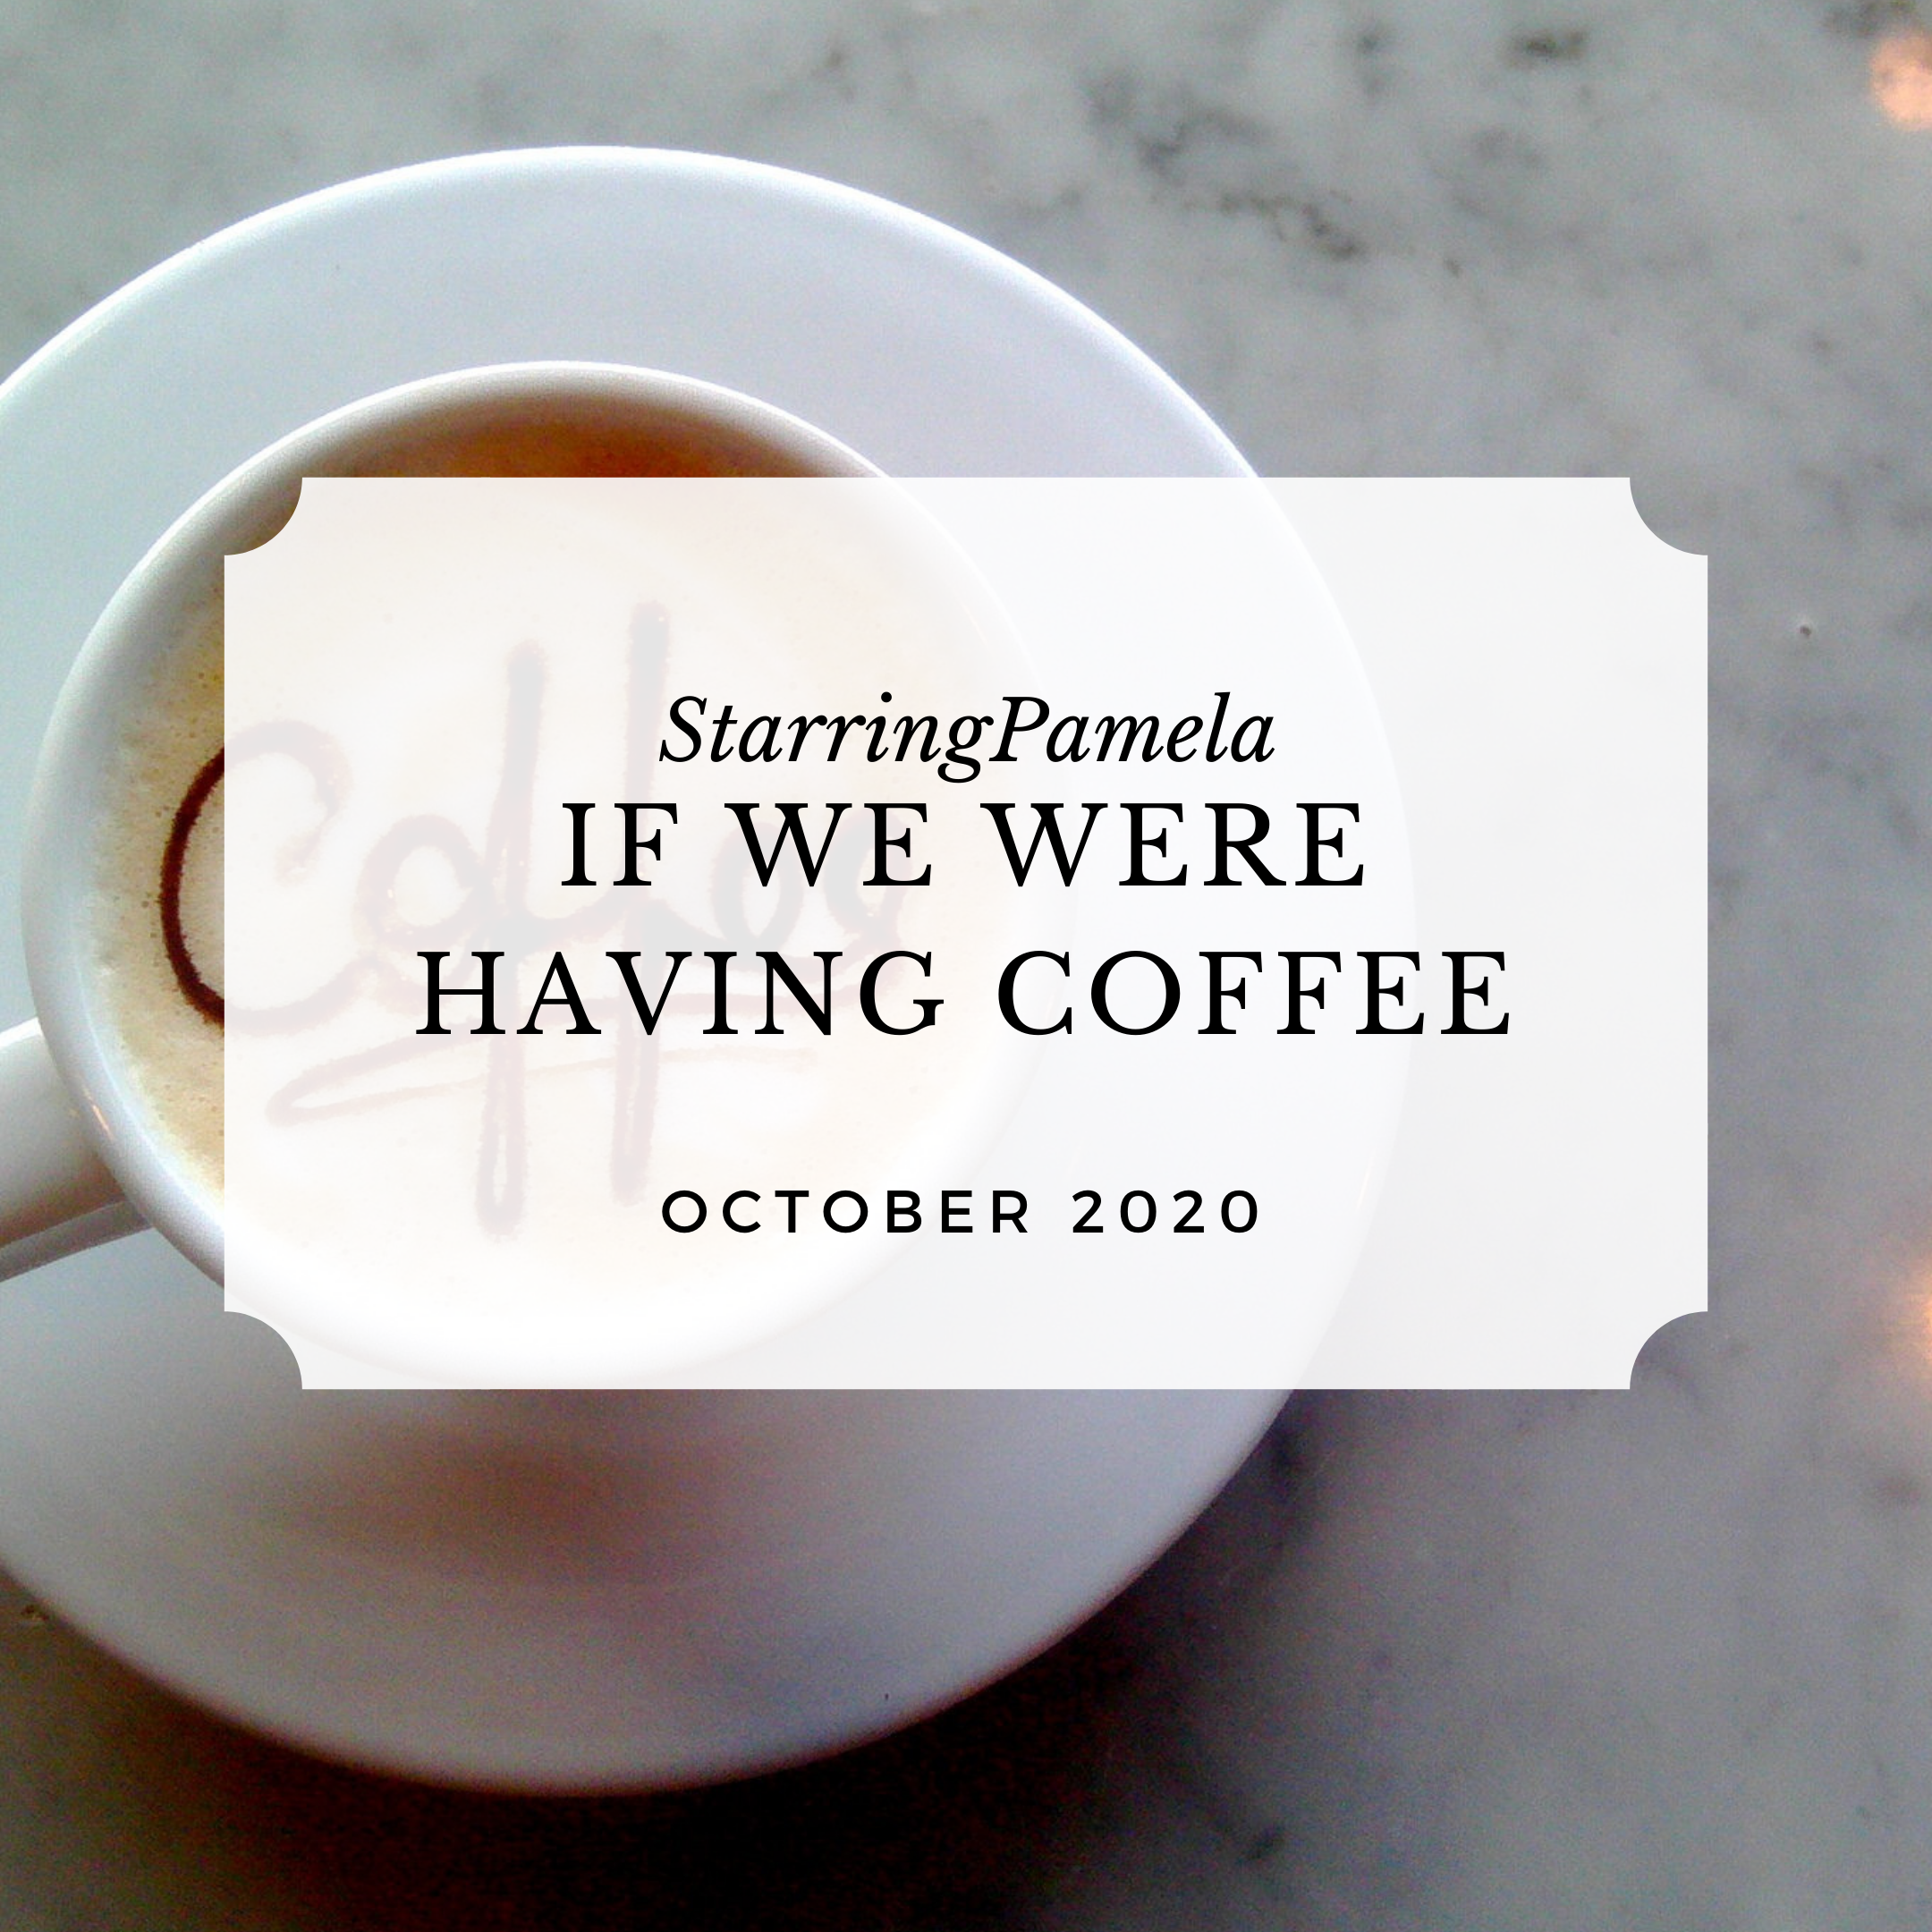 if we were having coffee october 2020 featured image